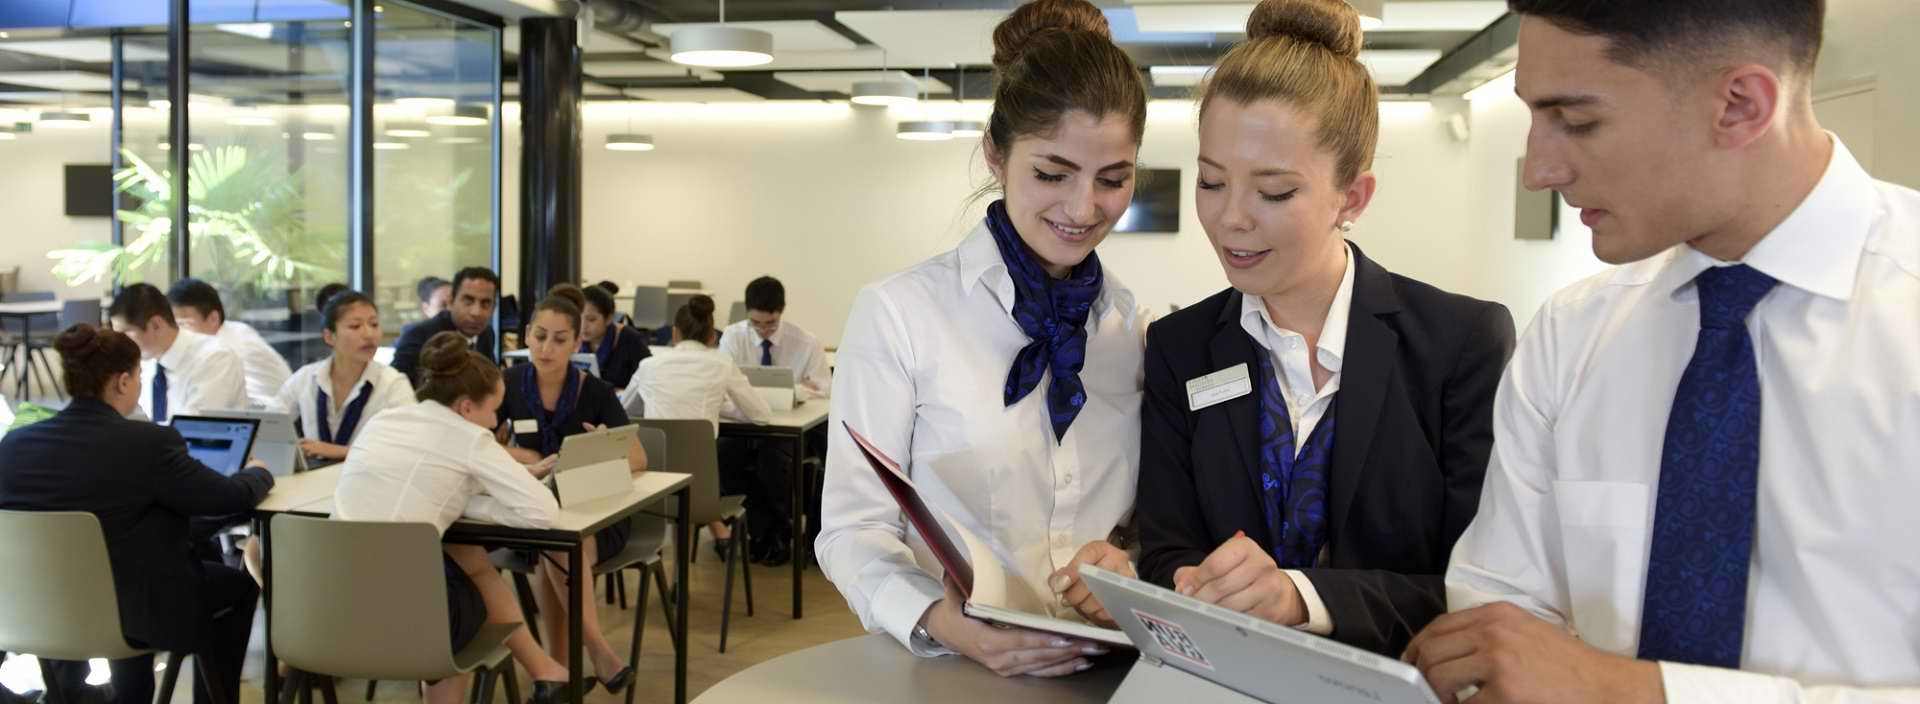 What are the hotel school's rate - tuition fees from Hotel Management School Geneva.